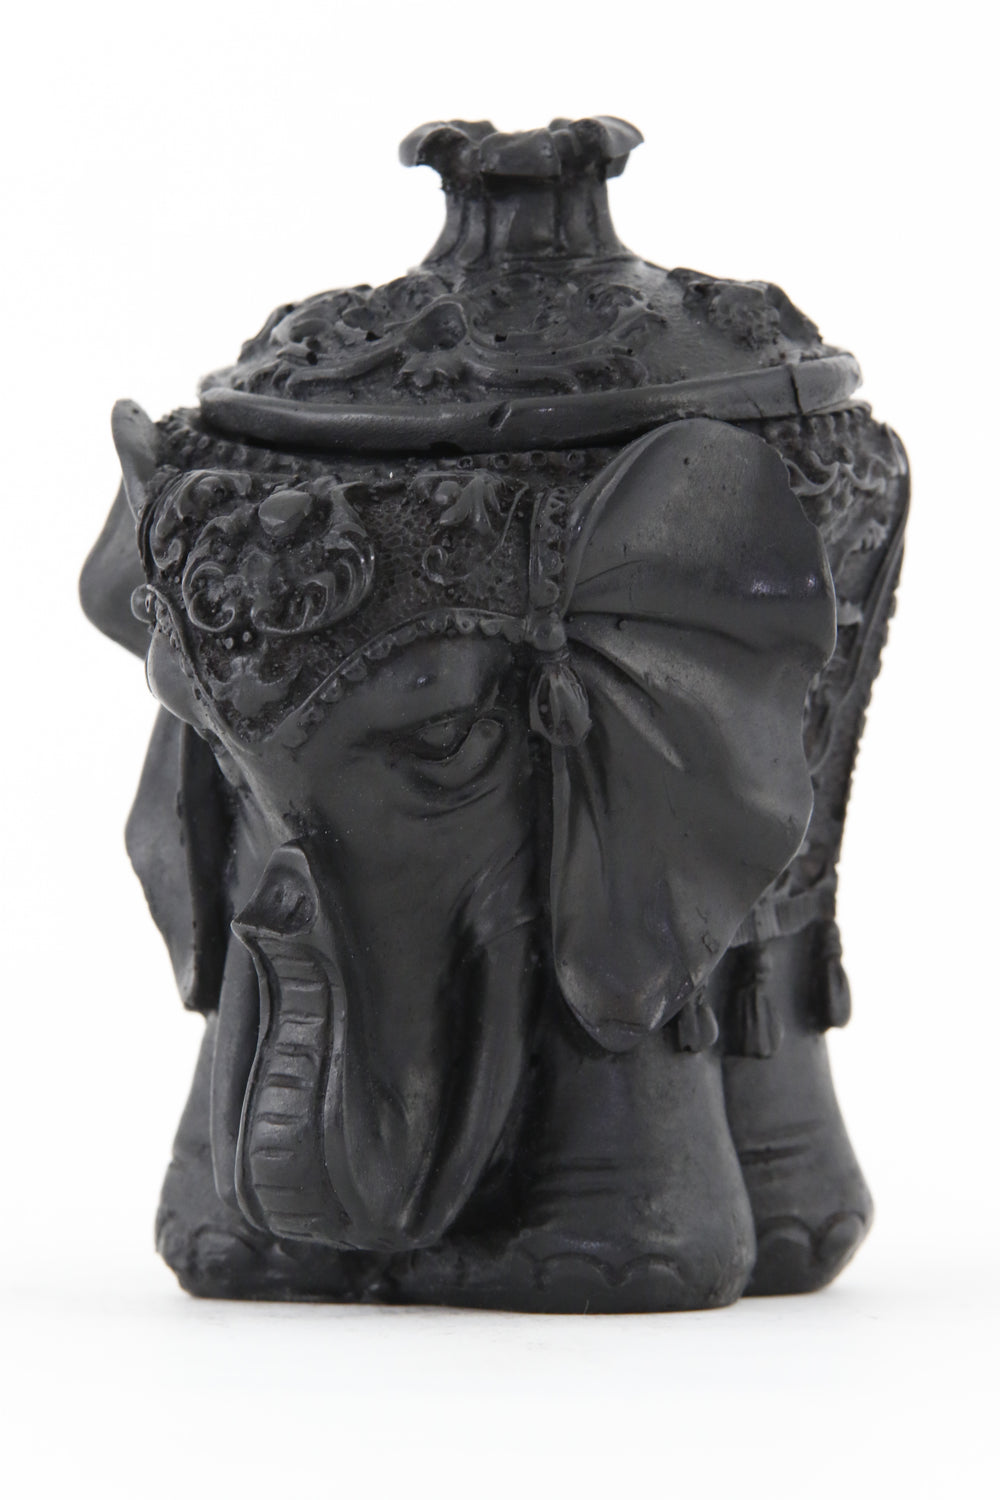 ELEPHANT BOX STATUE ROUND DARK SIDE 1 VIEW